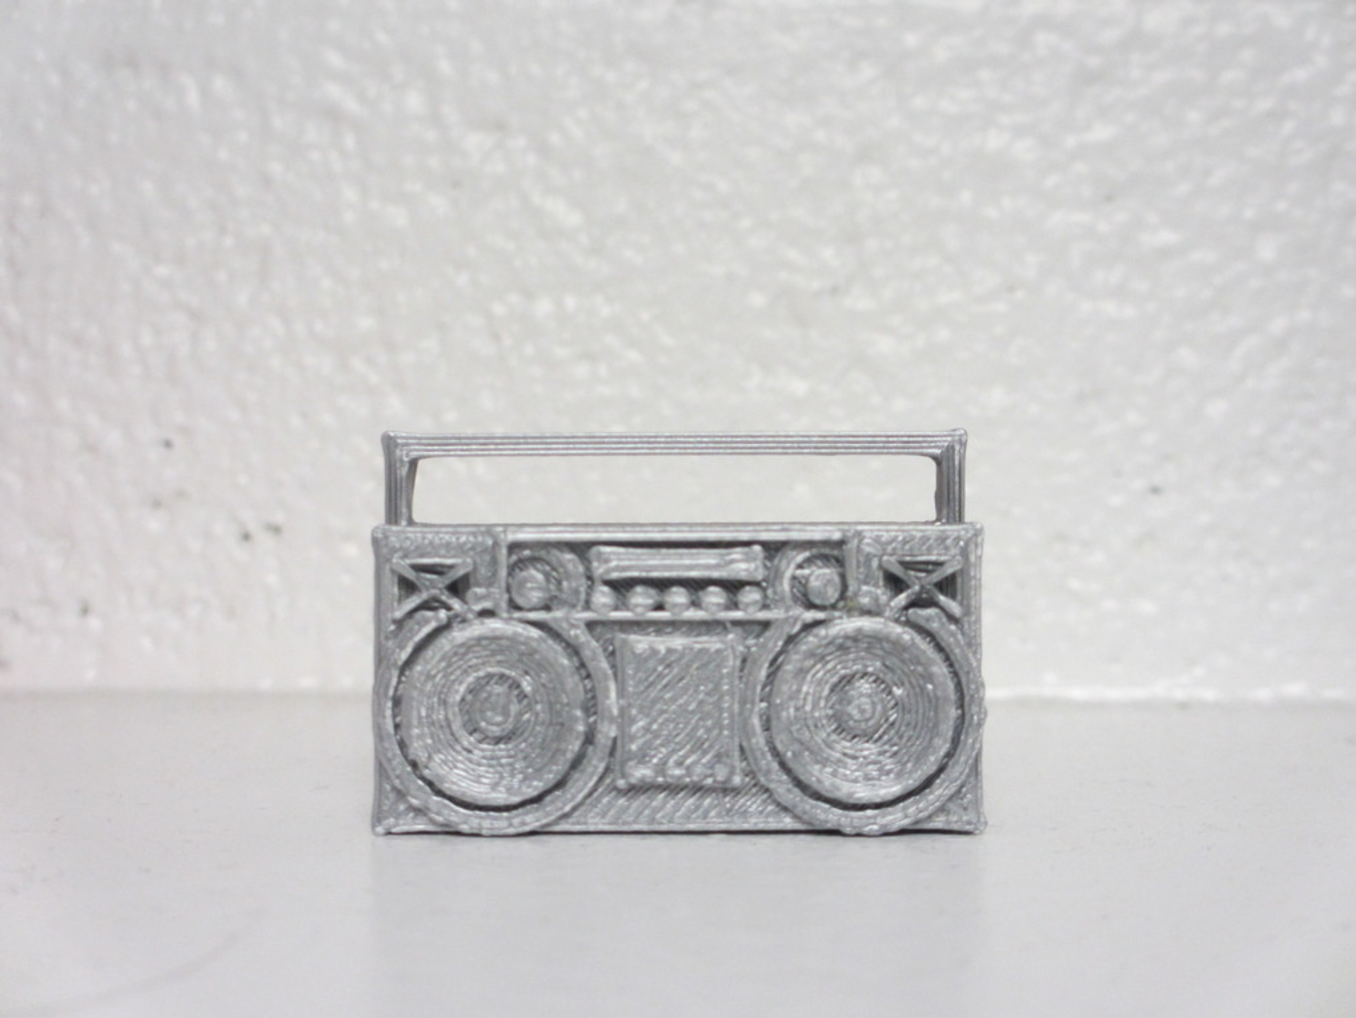 Capture d'écran 2017-01-23 à 11.33.44.png Download free STL file Boombox • 3D printer design, STRIX_3D